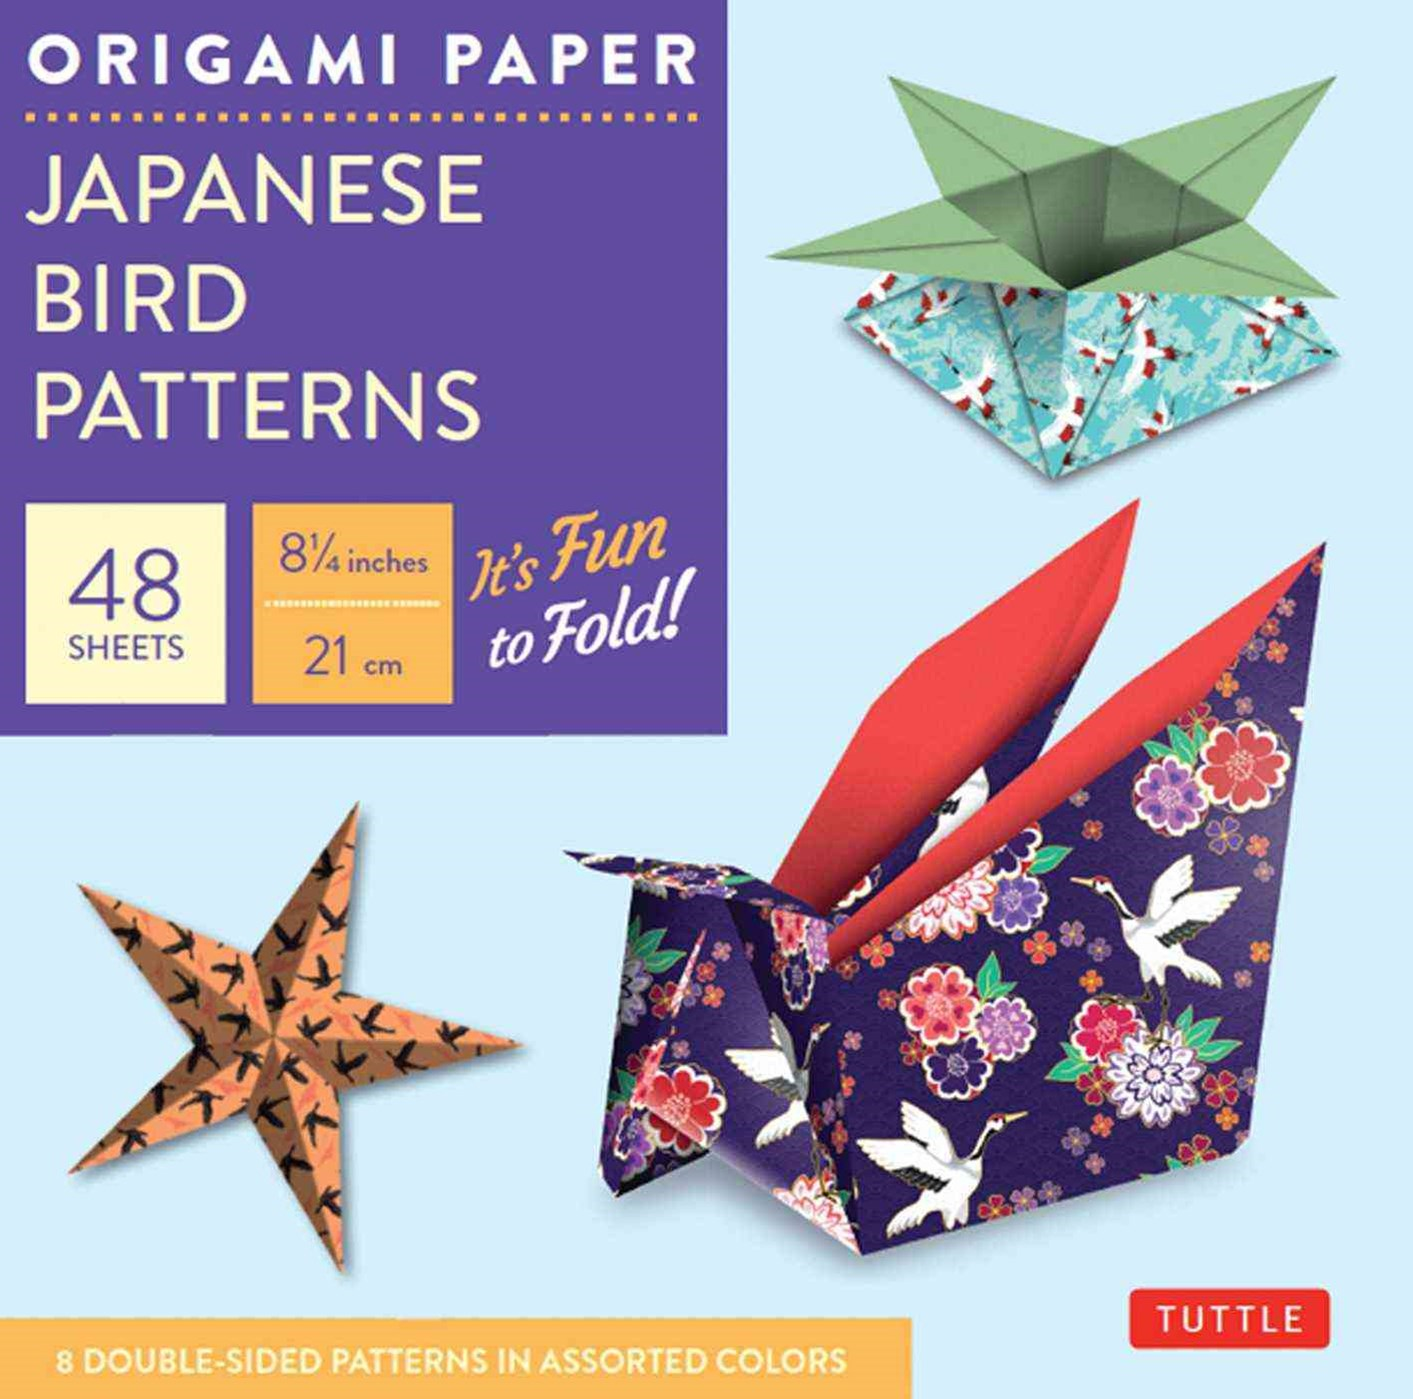 Origami Paper: Japanese Bird Patterns - 21cm